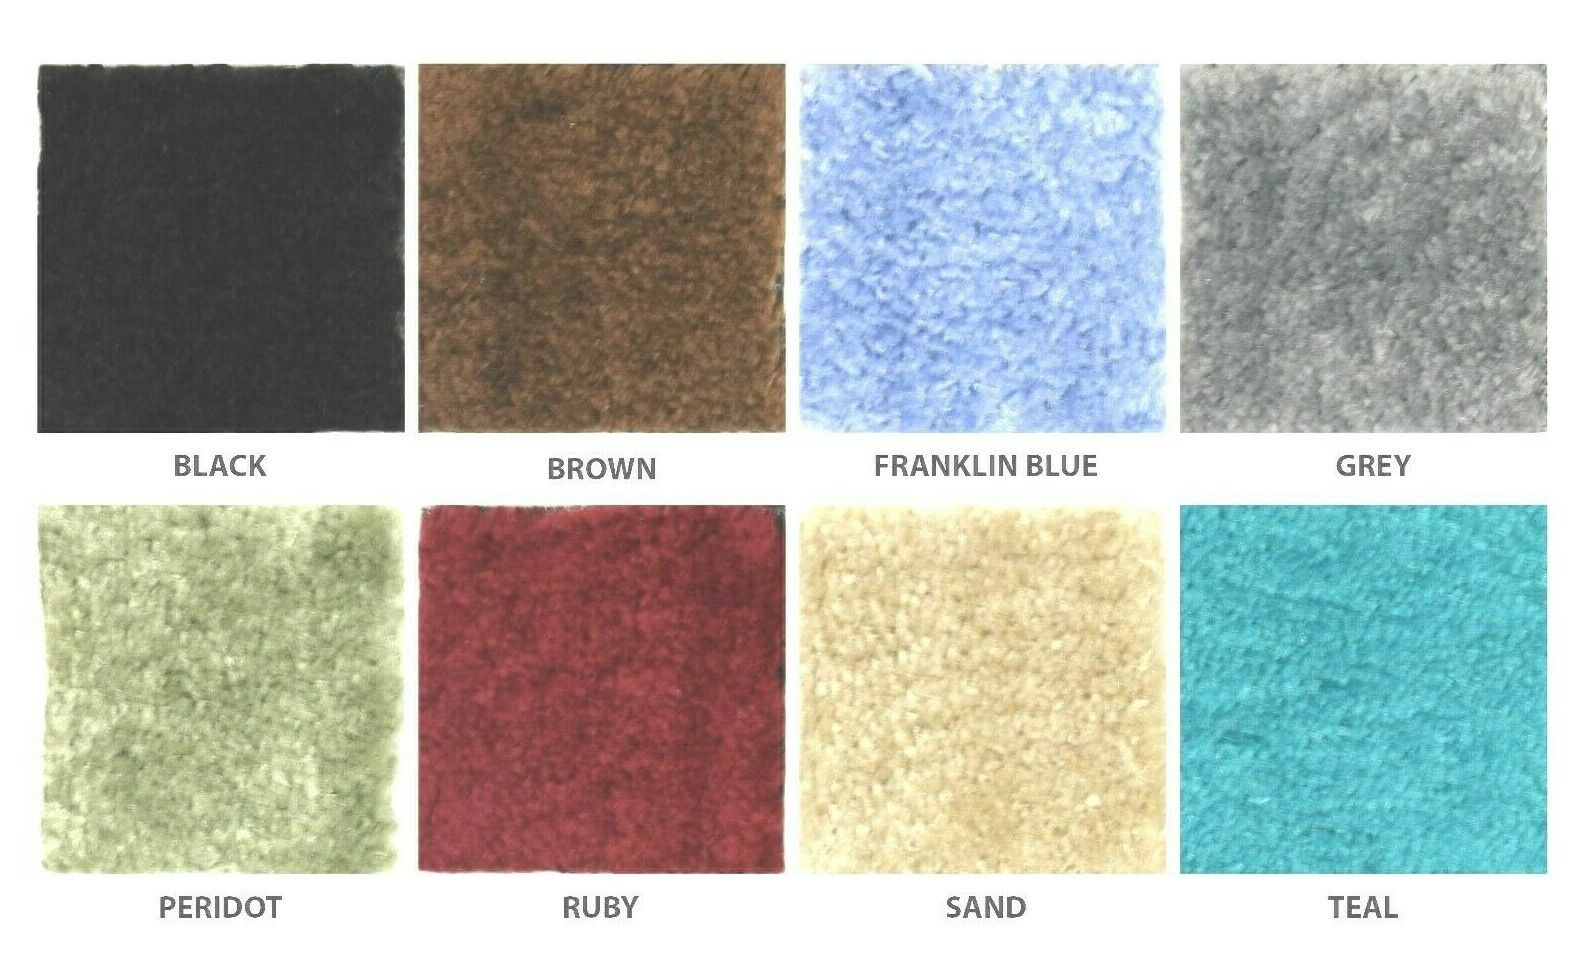 Black Wall To Wall Bathroom Carpet Rugs In 8 Colors Size 5 X 8 Pick 1 Now X For Sale Online Ebay